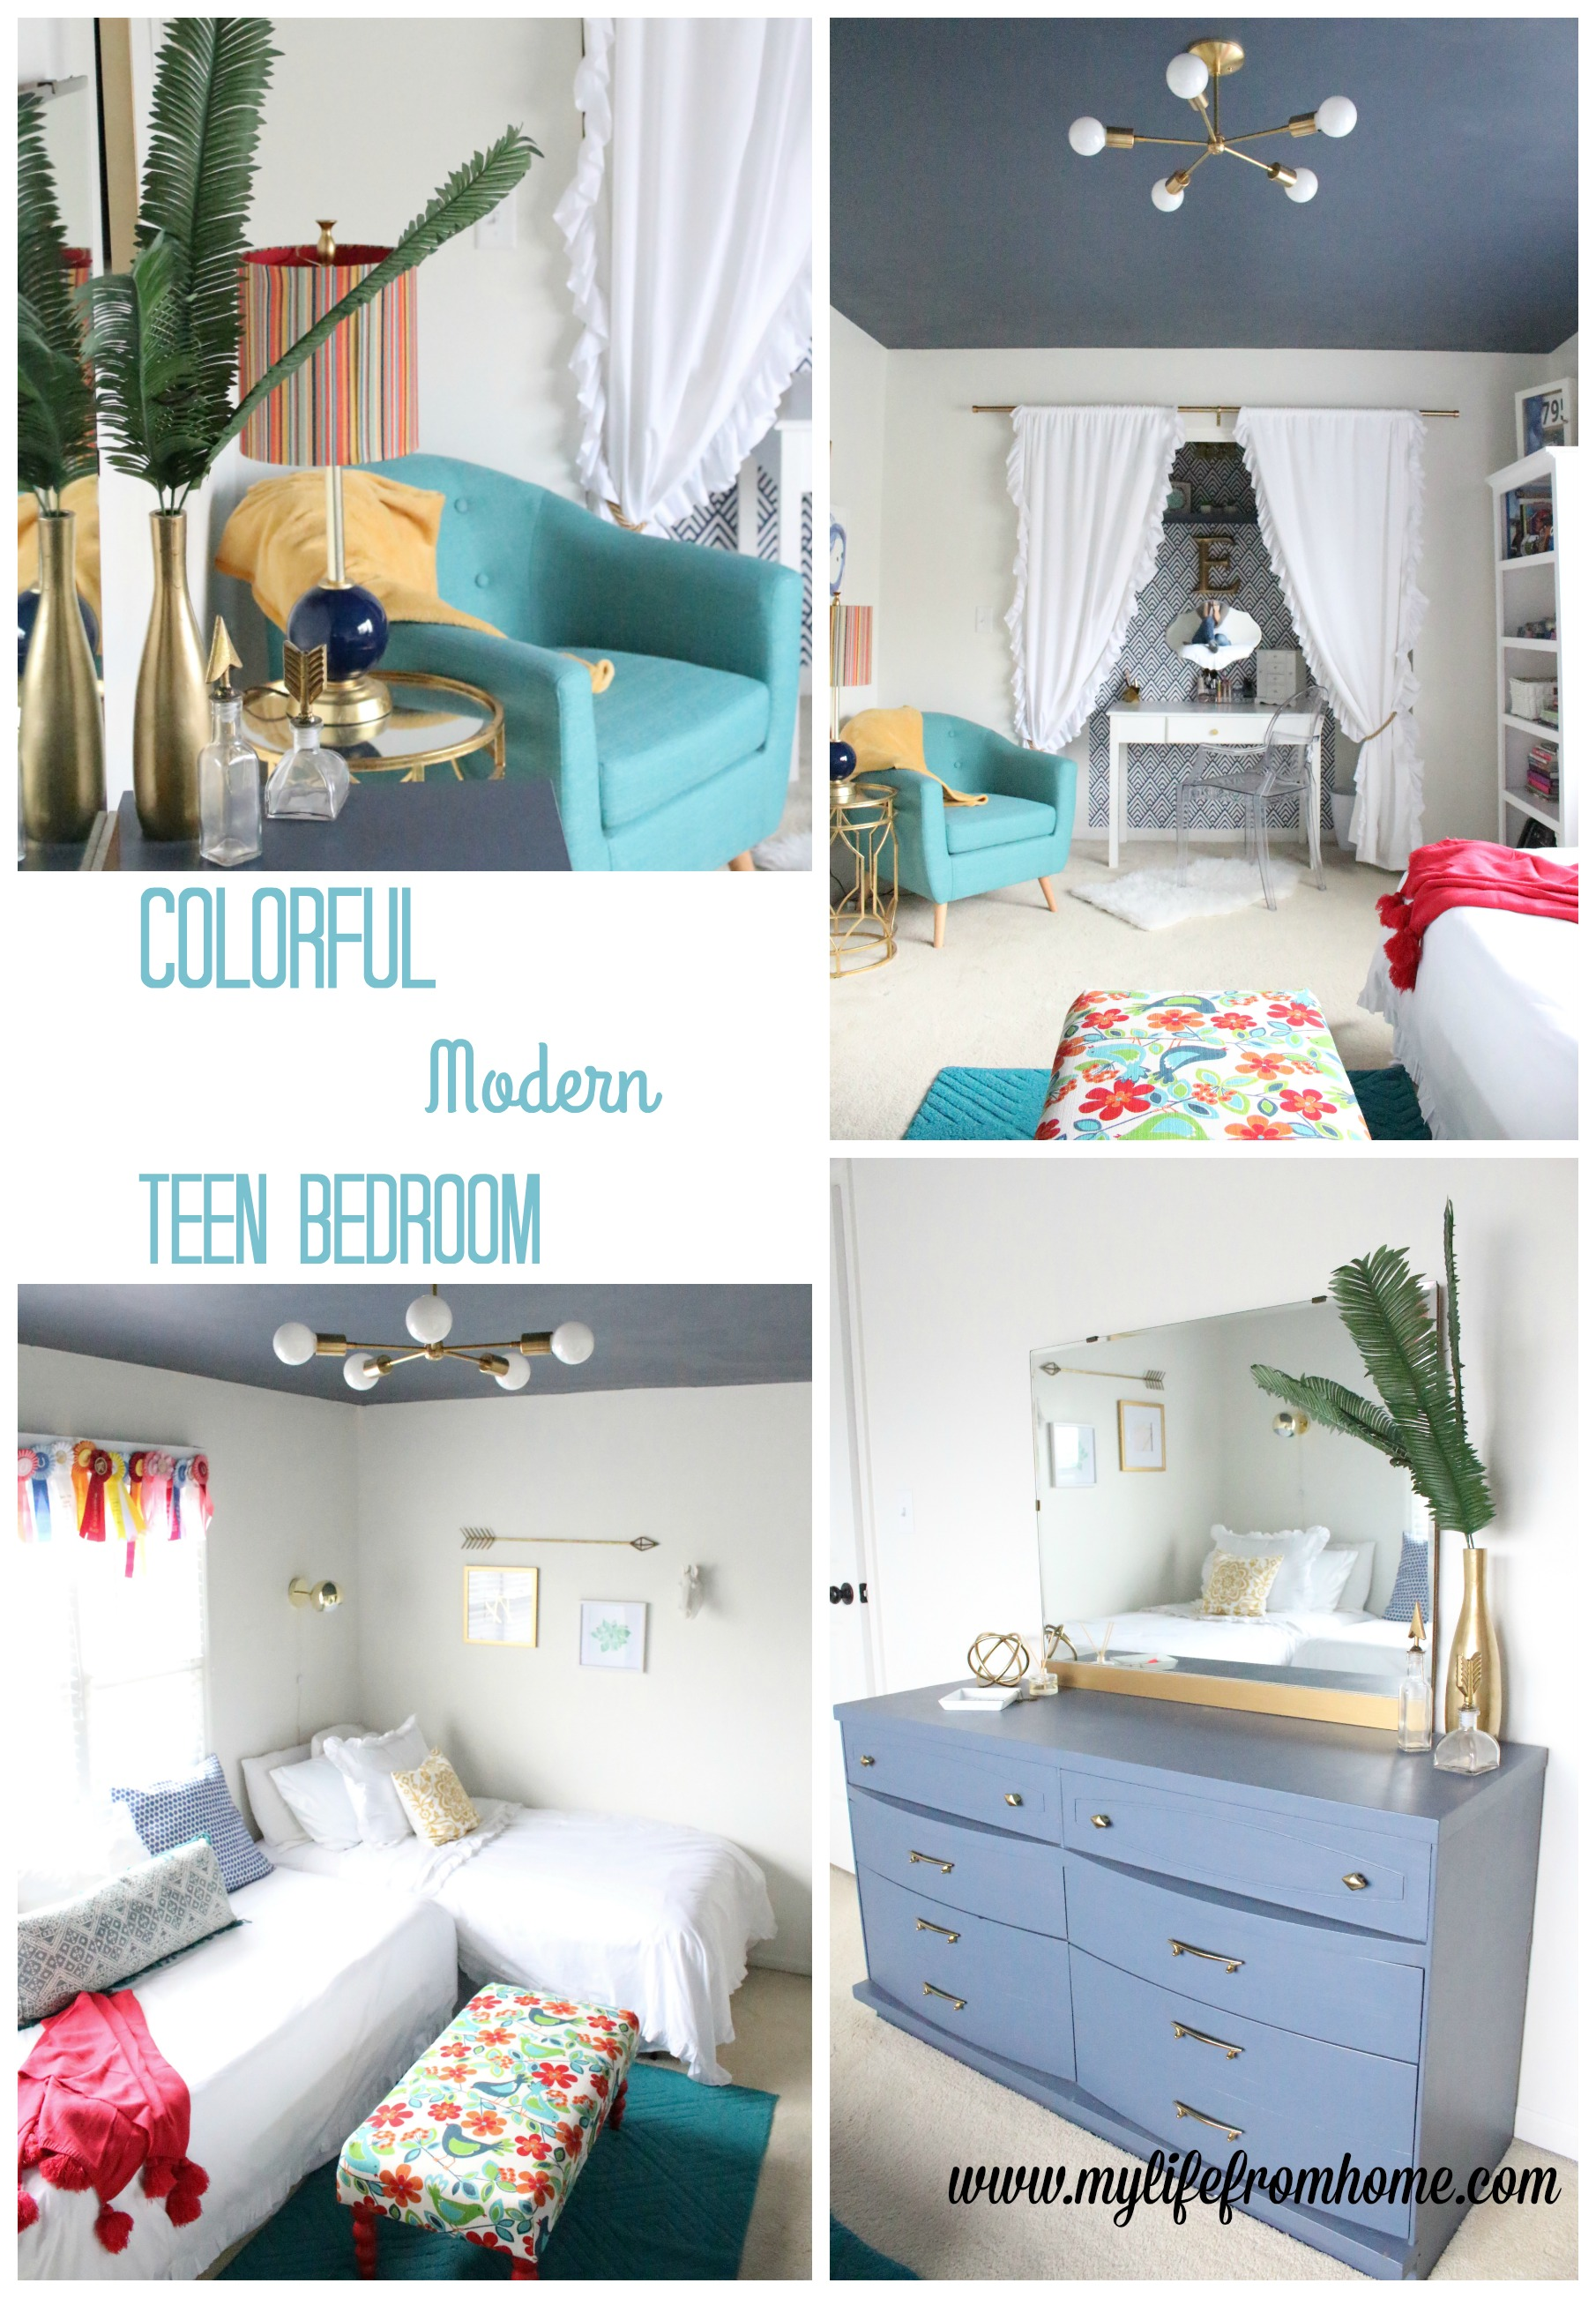 bedroom-colorful-modern-teen-bedroom-reveal-bedroom-redo-teen-bedroom-kids-bedrooms-modern-decor-color-gold-decor-home-decorating-bedroom-redecorating-one-room-challenge